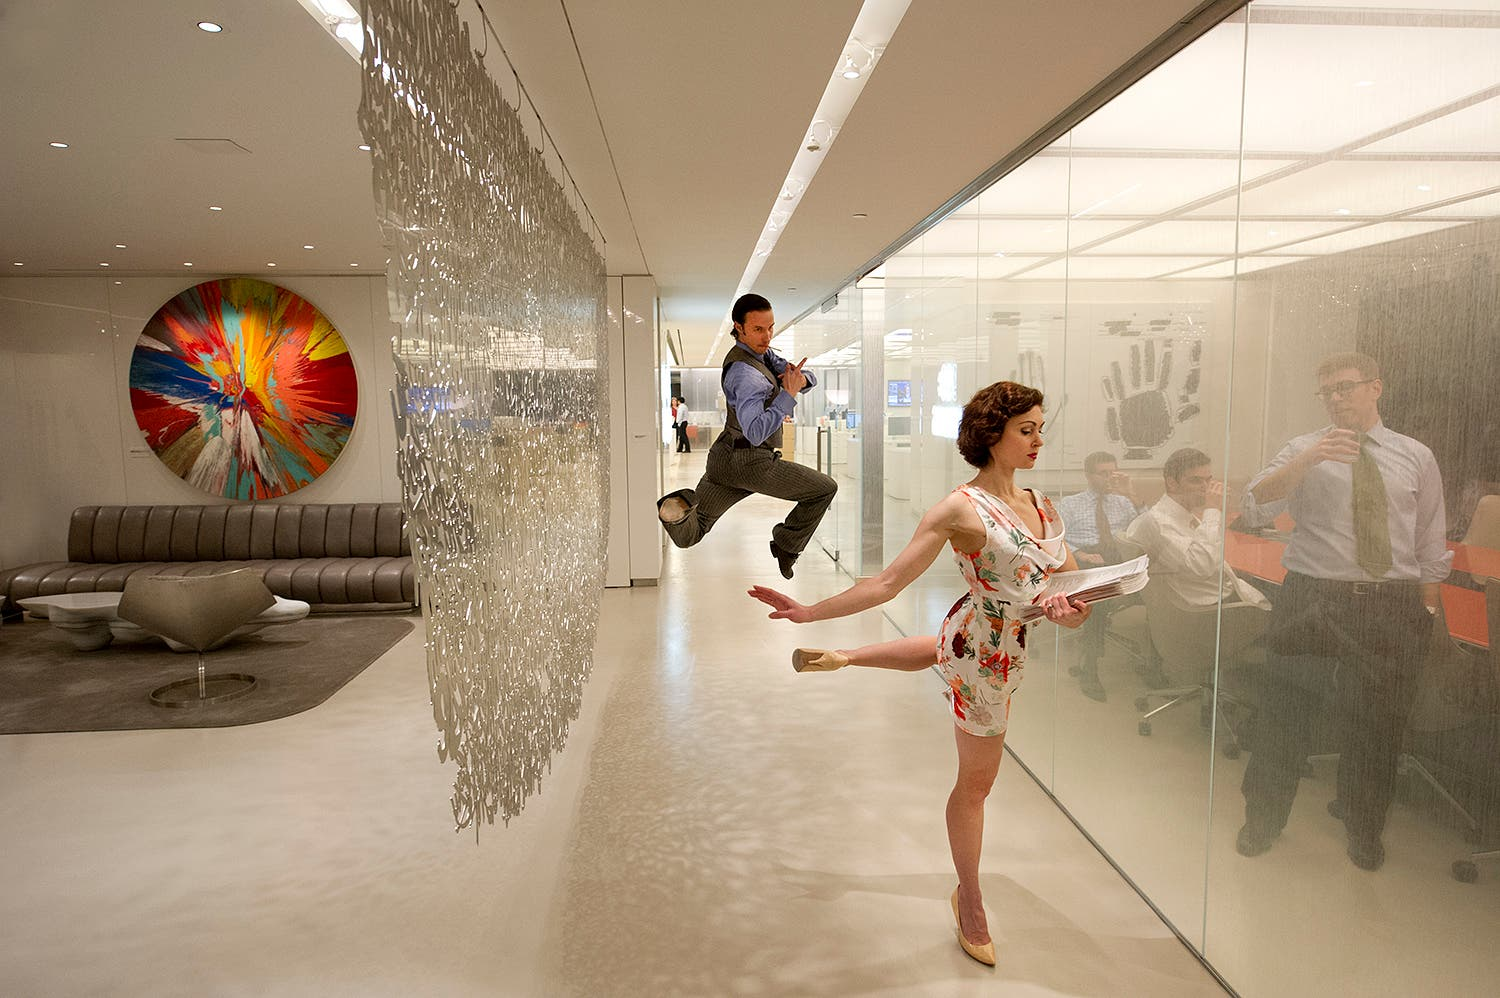 Jordan Matter Photographs Dancers Mad Men Style